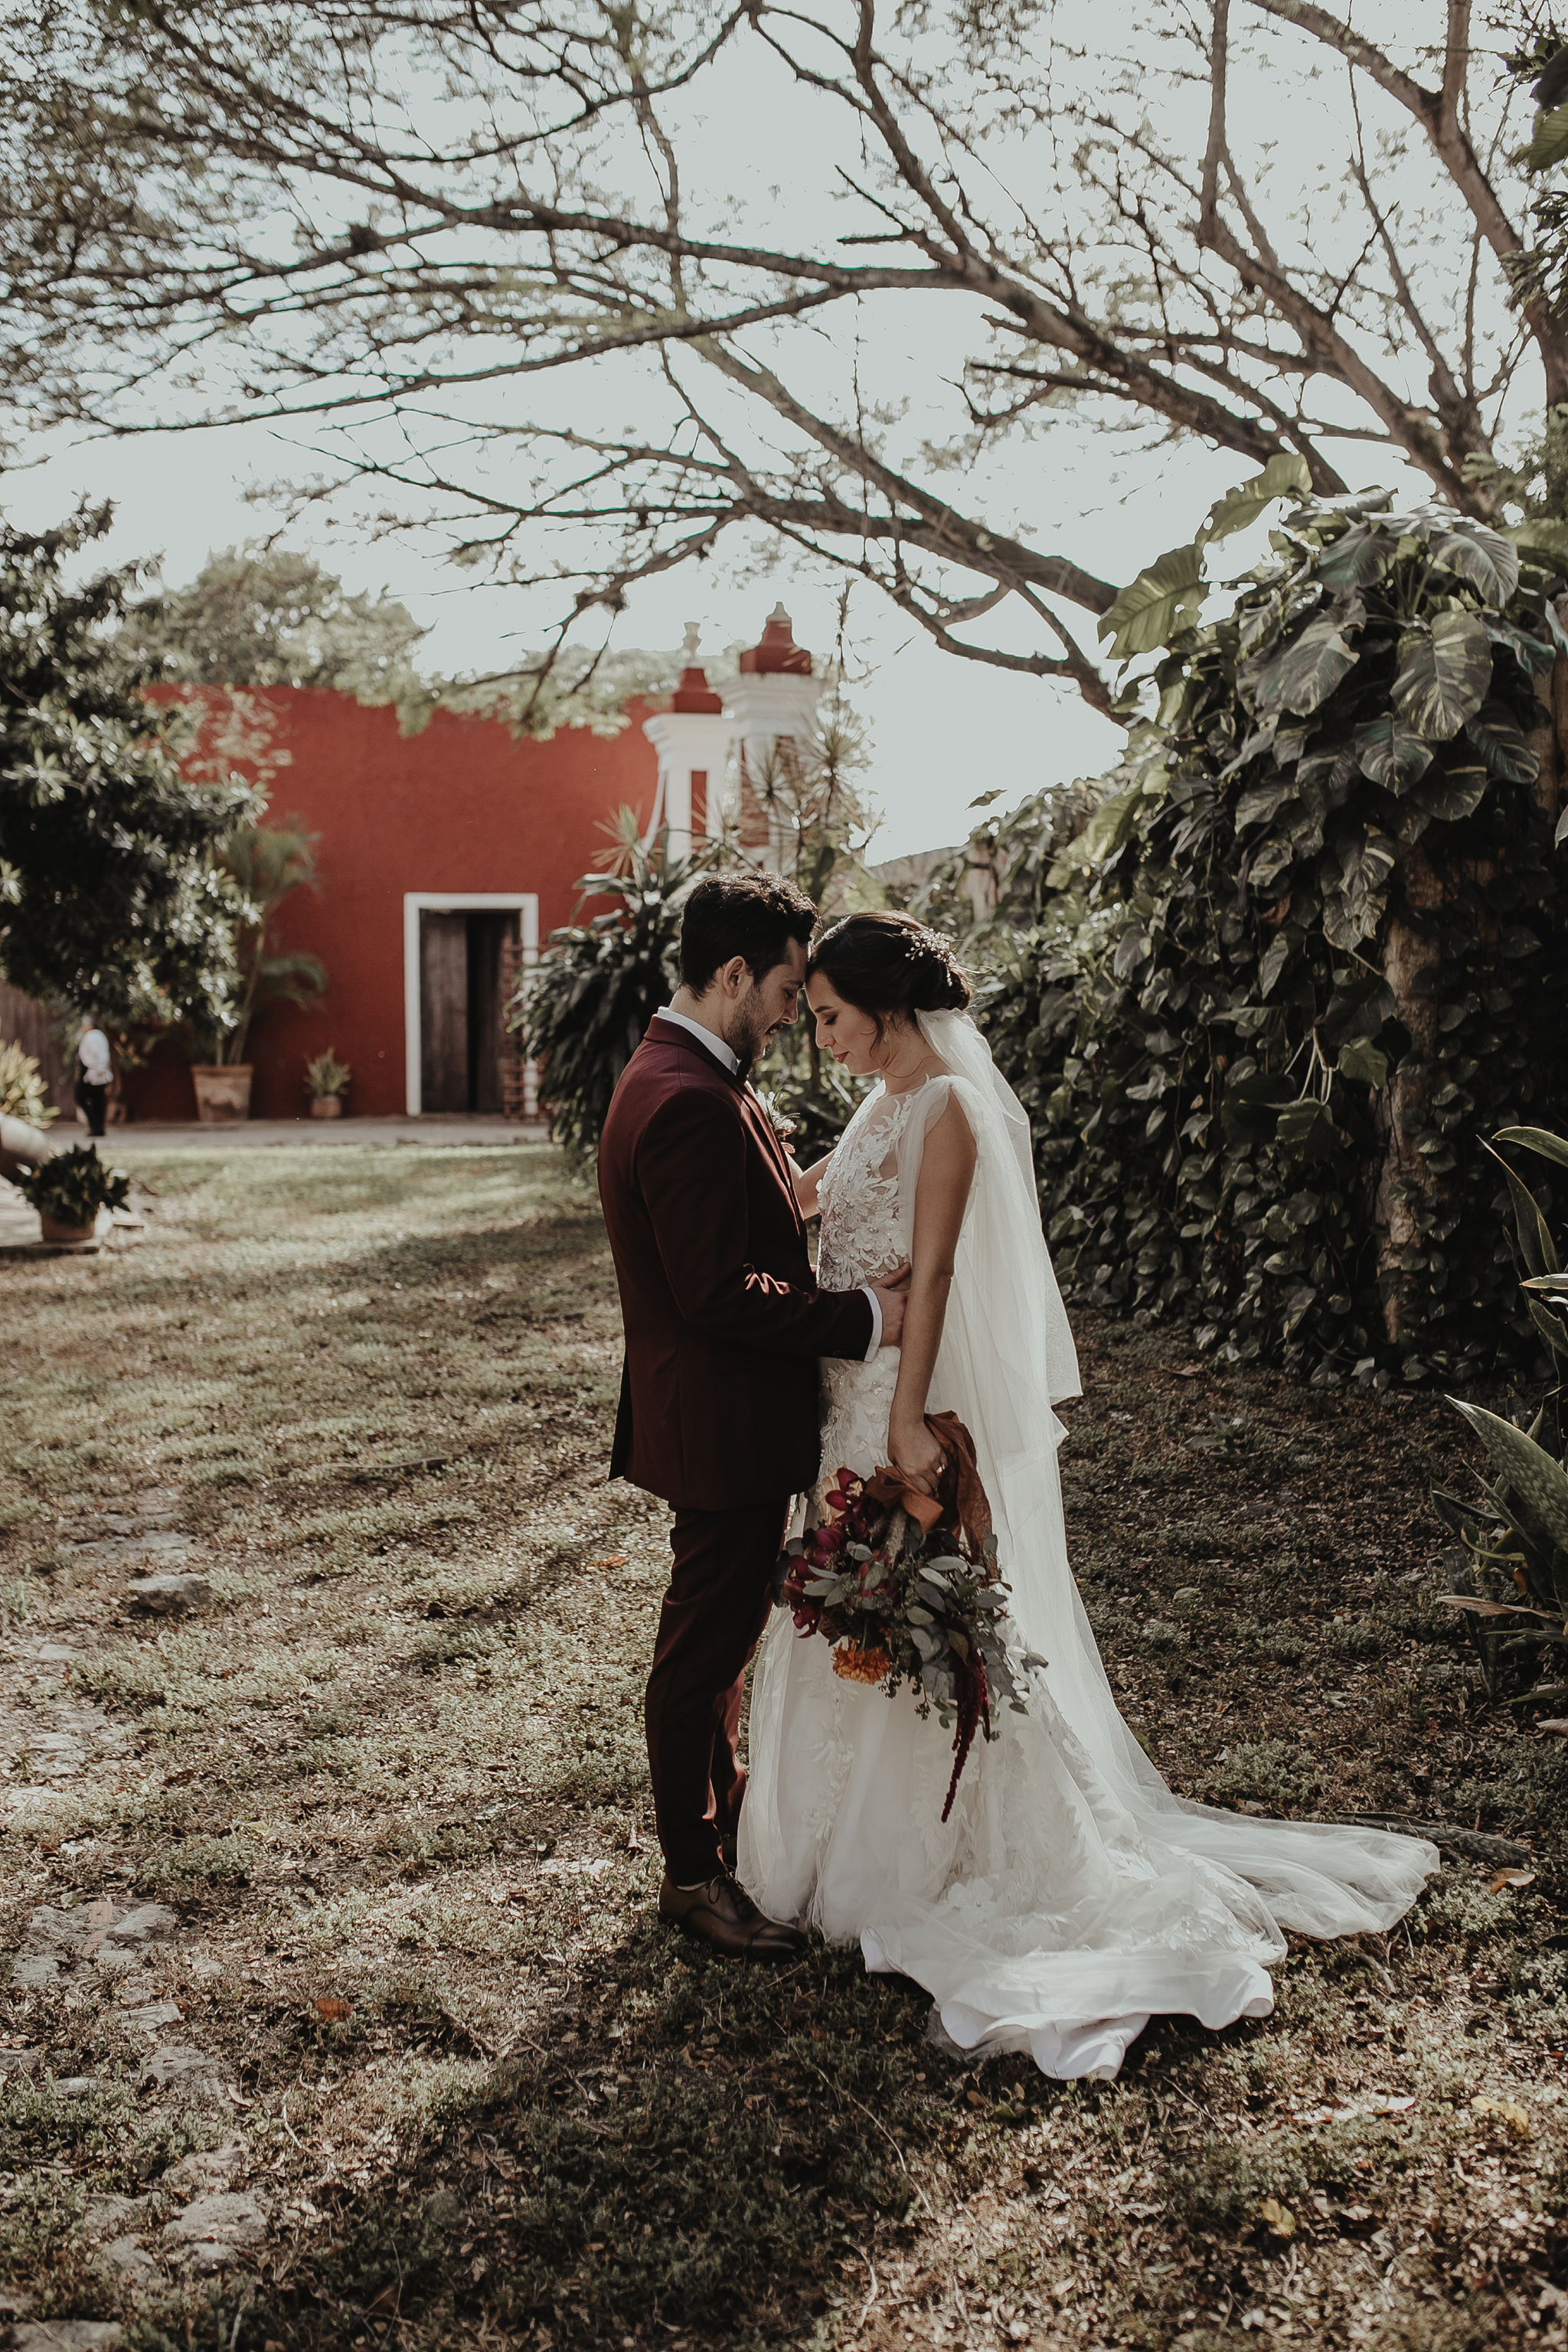 0206p&a_Hacienda__WeddingDestination_Weddingmerida_BodaMexico_FotografoDeBodas_WeddingGay.jpg